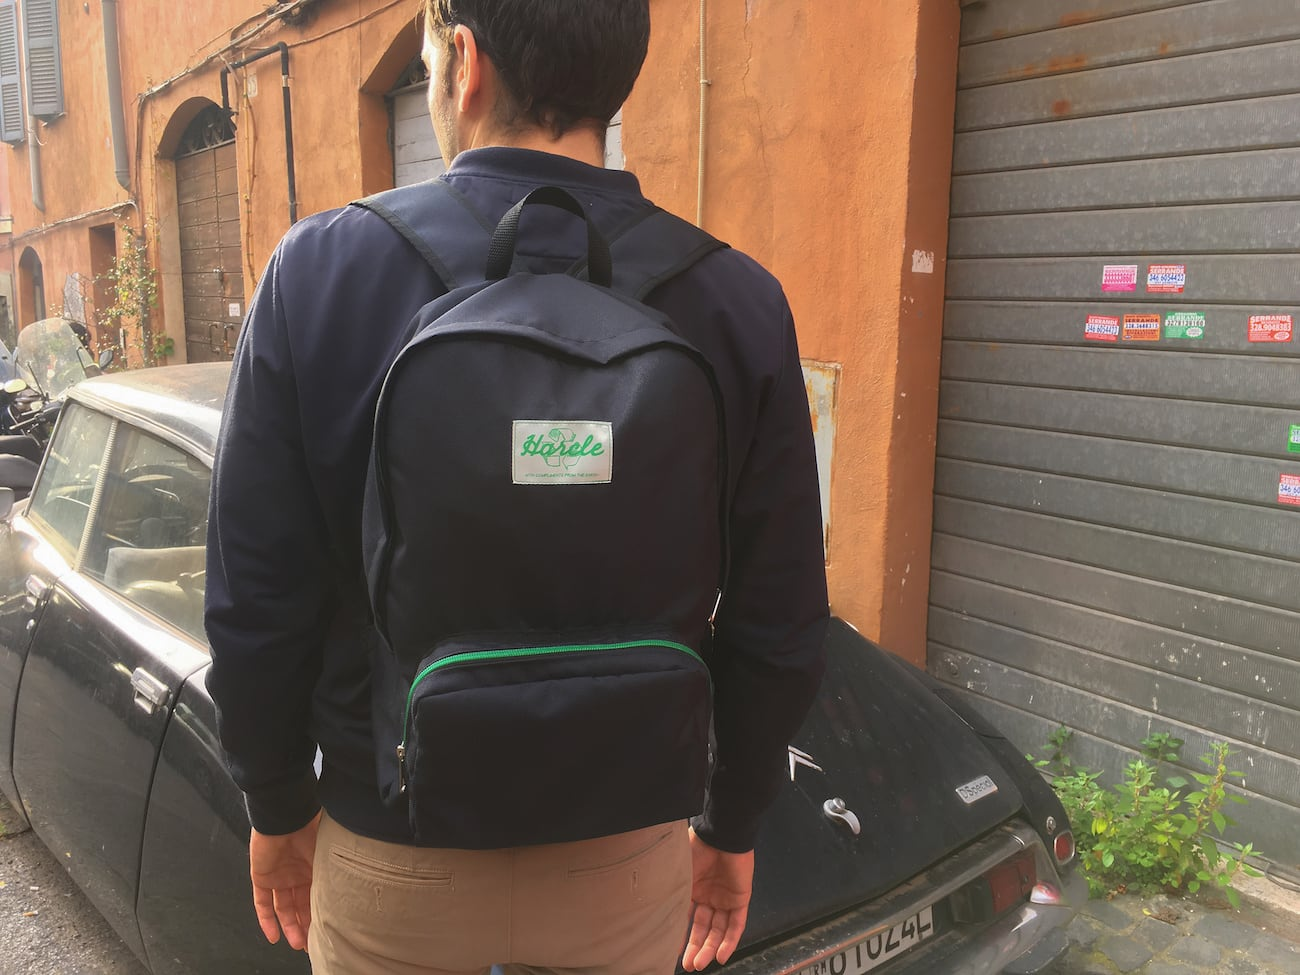 Harcle Eco-Friendly Backpack Set